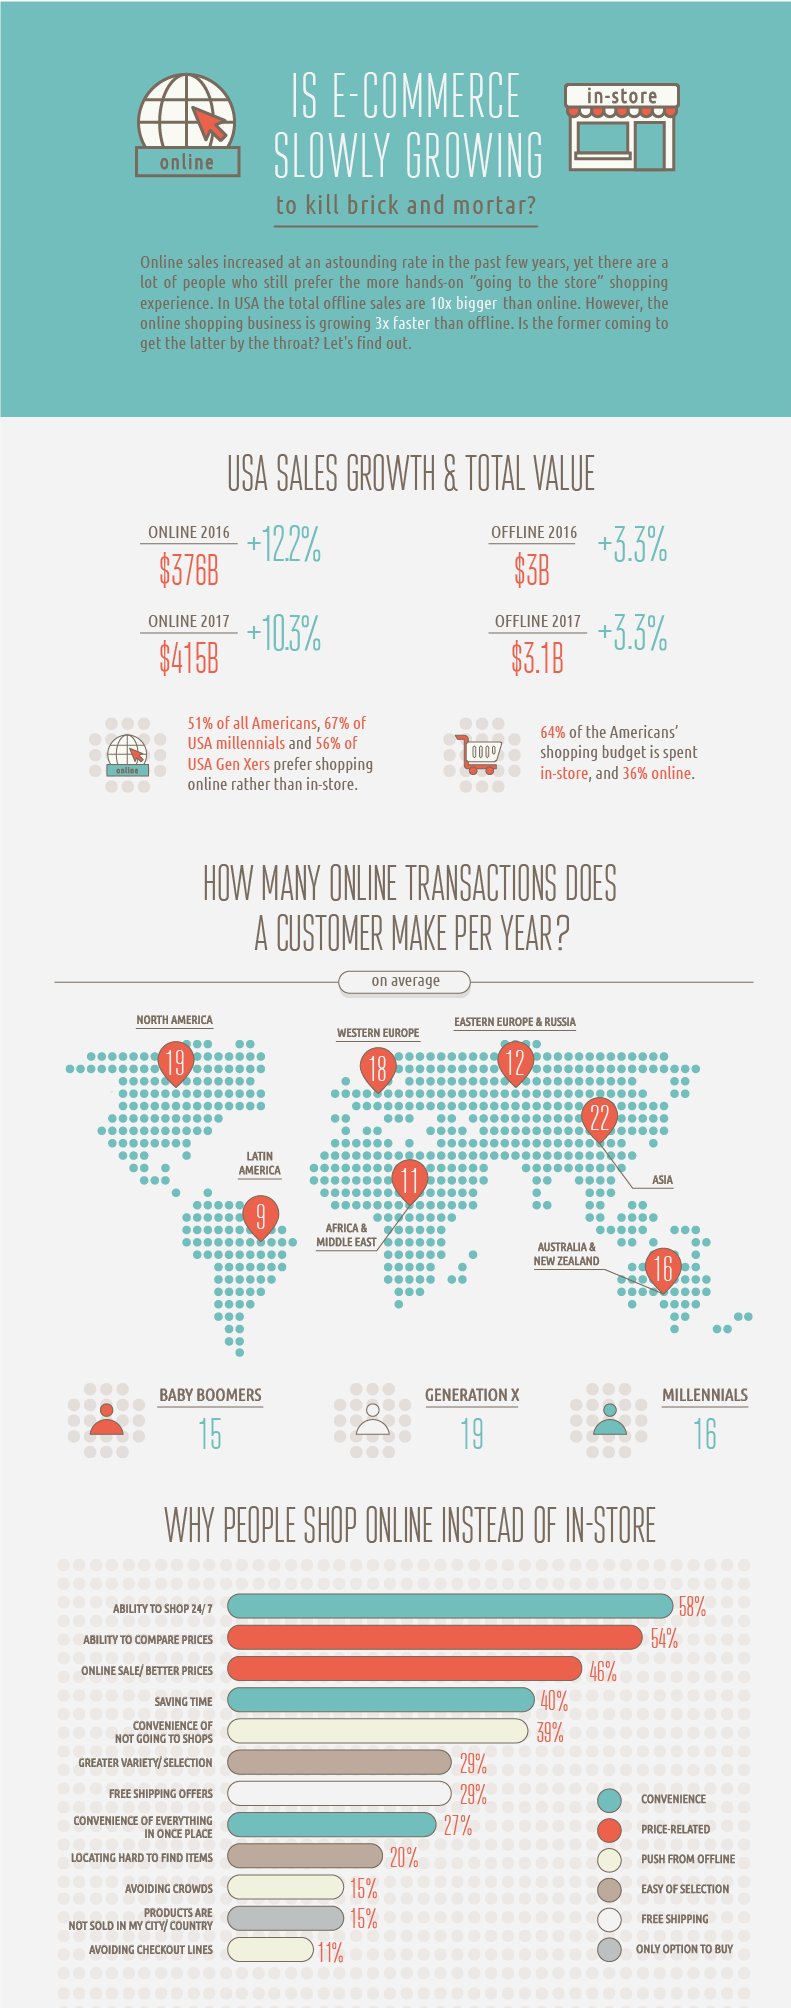 Online and offline commerce have their unique dynamics. Find out about the stats in eCommerce, mCommerce and offline commerce in this free infographic from Shopping.fm